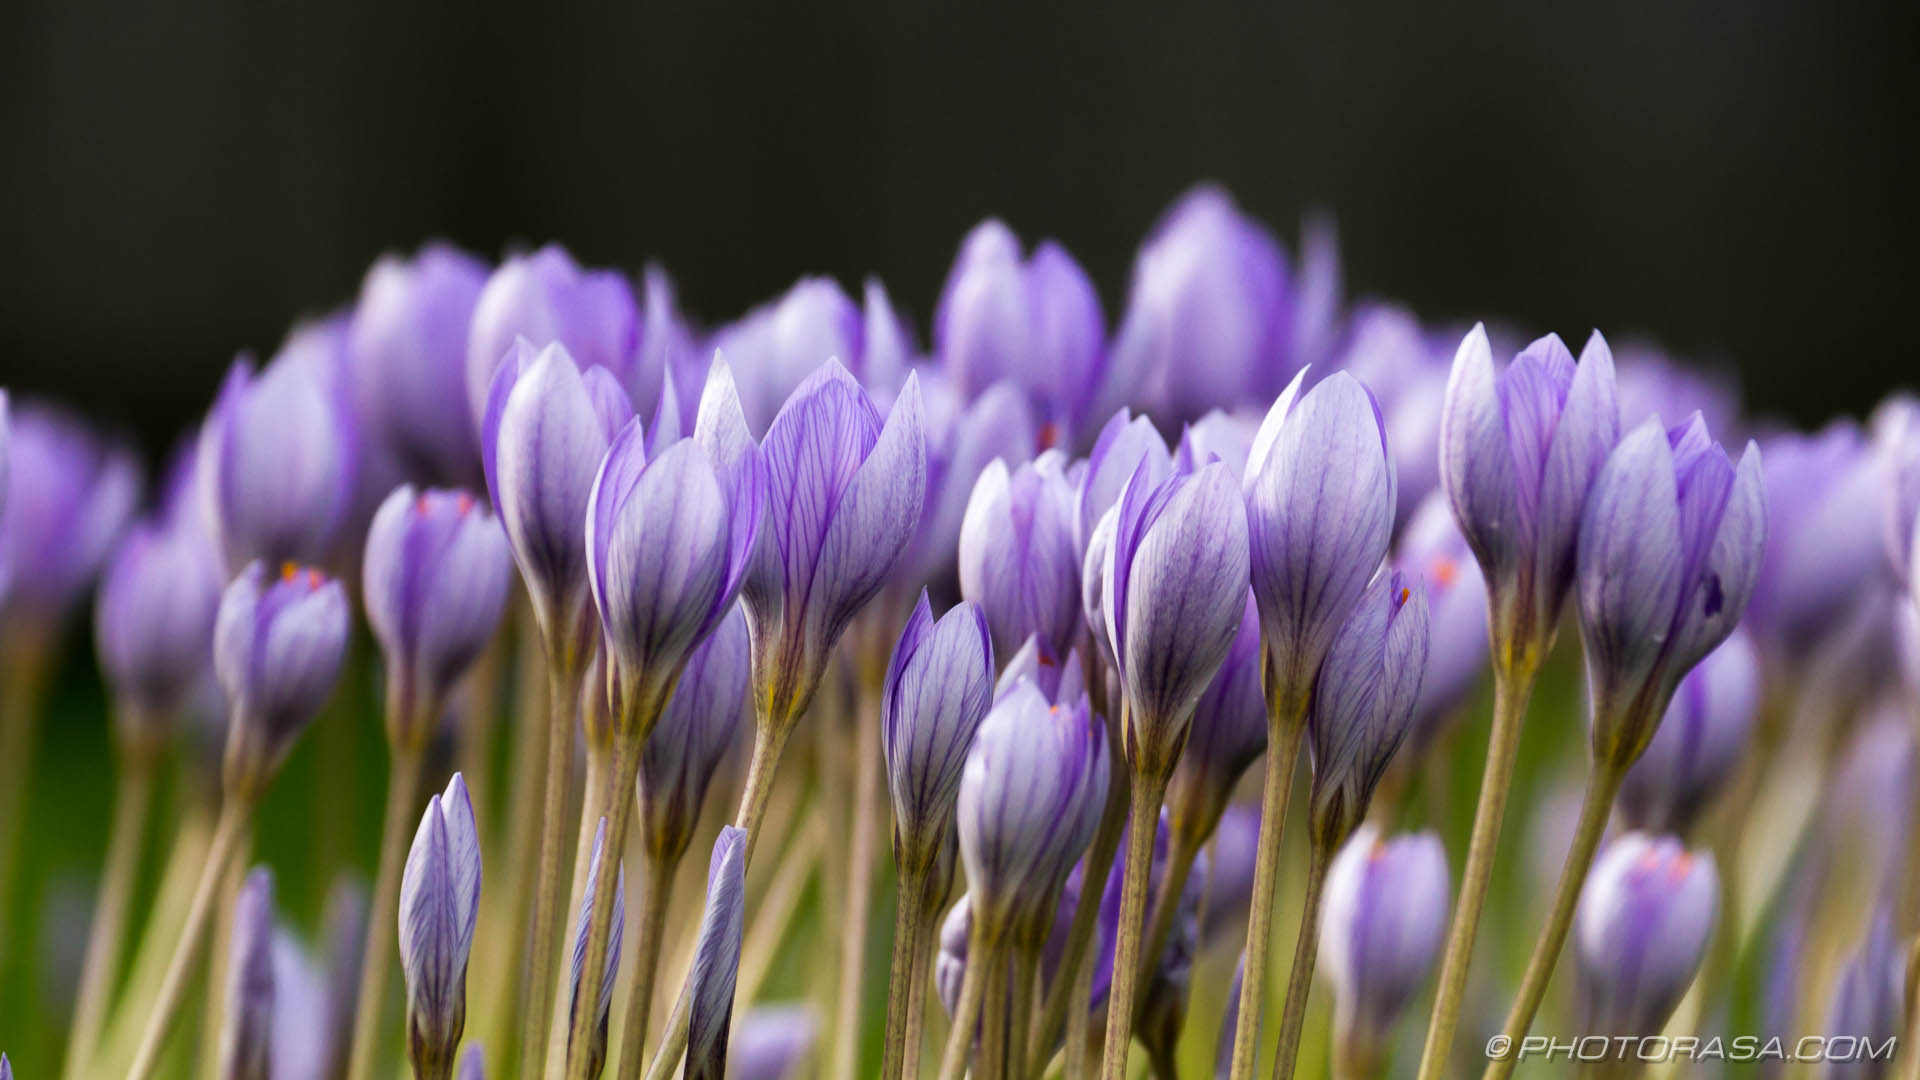 http://photorasa.com/purple-autumn-crocuses/dark-veins-from-the-side/